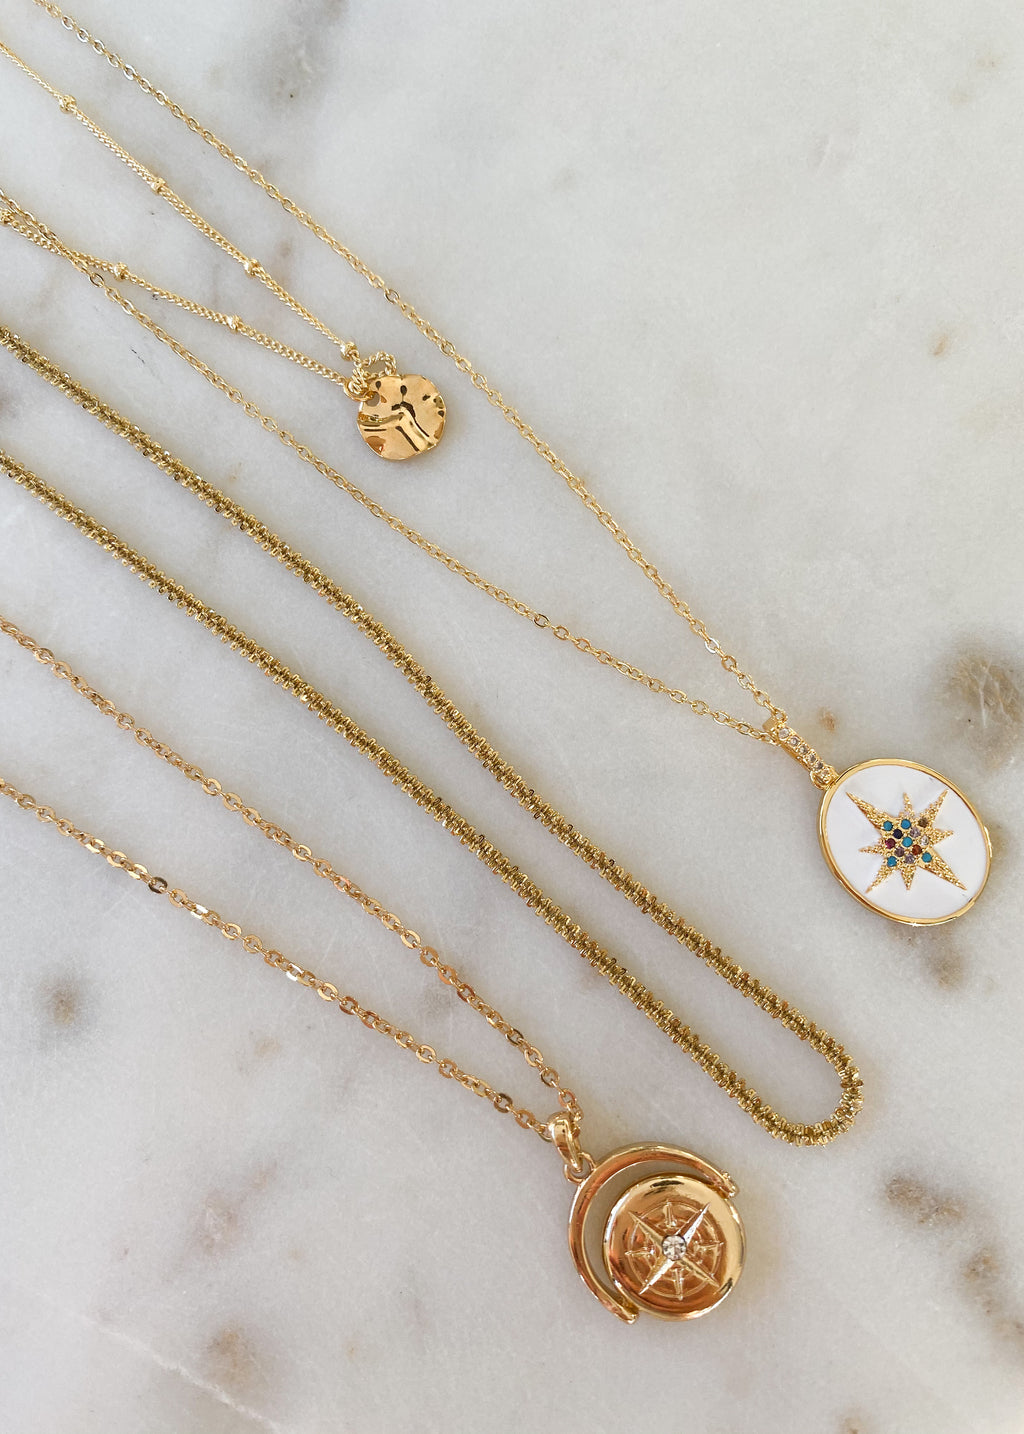 18K Gold Plated, Atlas Necklace - JT LUXE